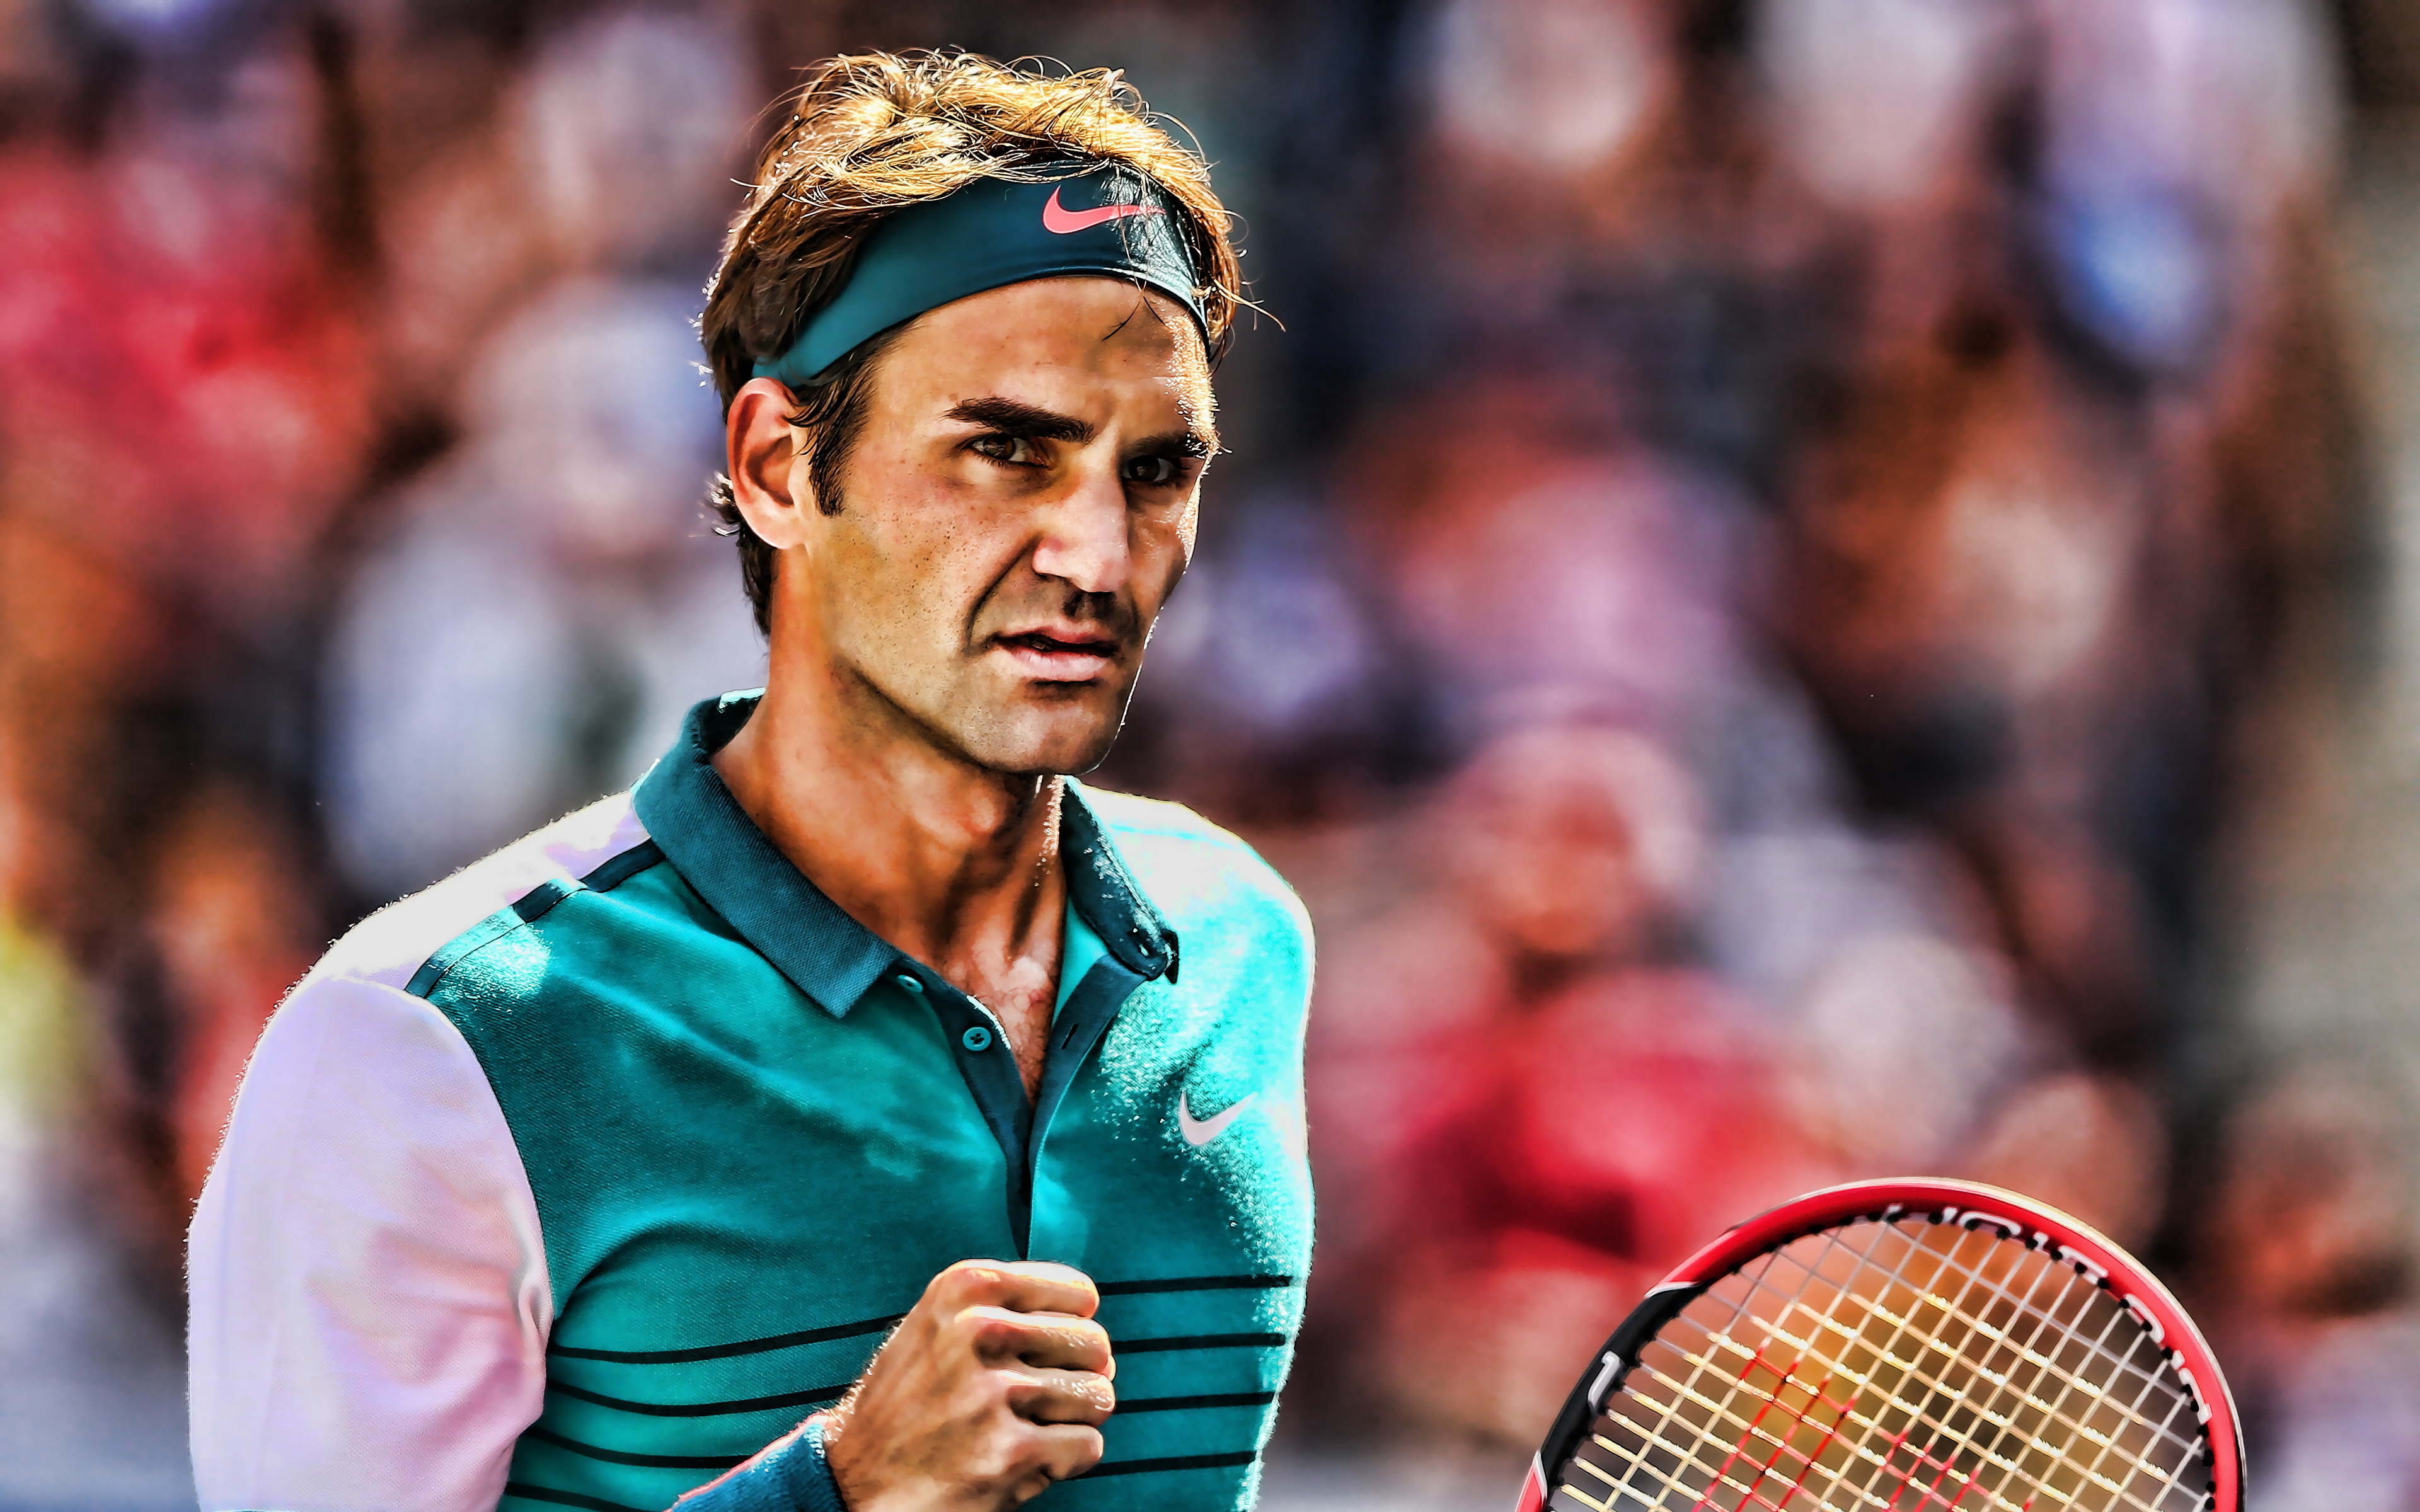 Download Wallpapers Roger Federer 4k Swiss Tennis Players Atp Match Athlete Federer Tennis Hdr For Desktop With Resolution 3840x2400 High Quality Hd Pictures Wallpapers